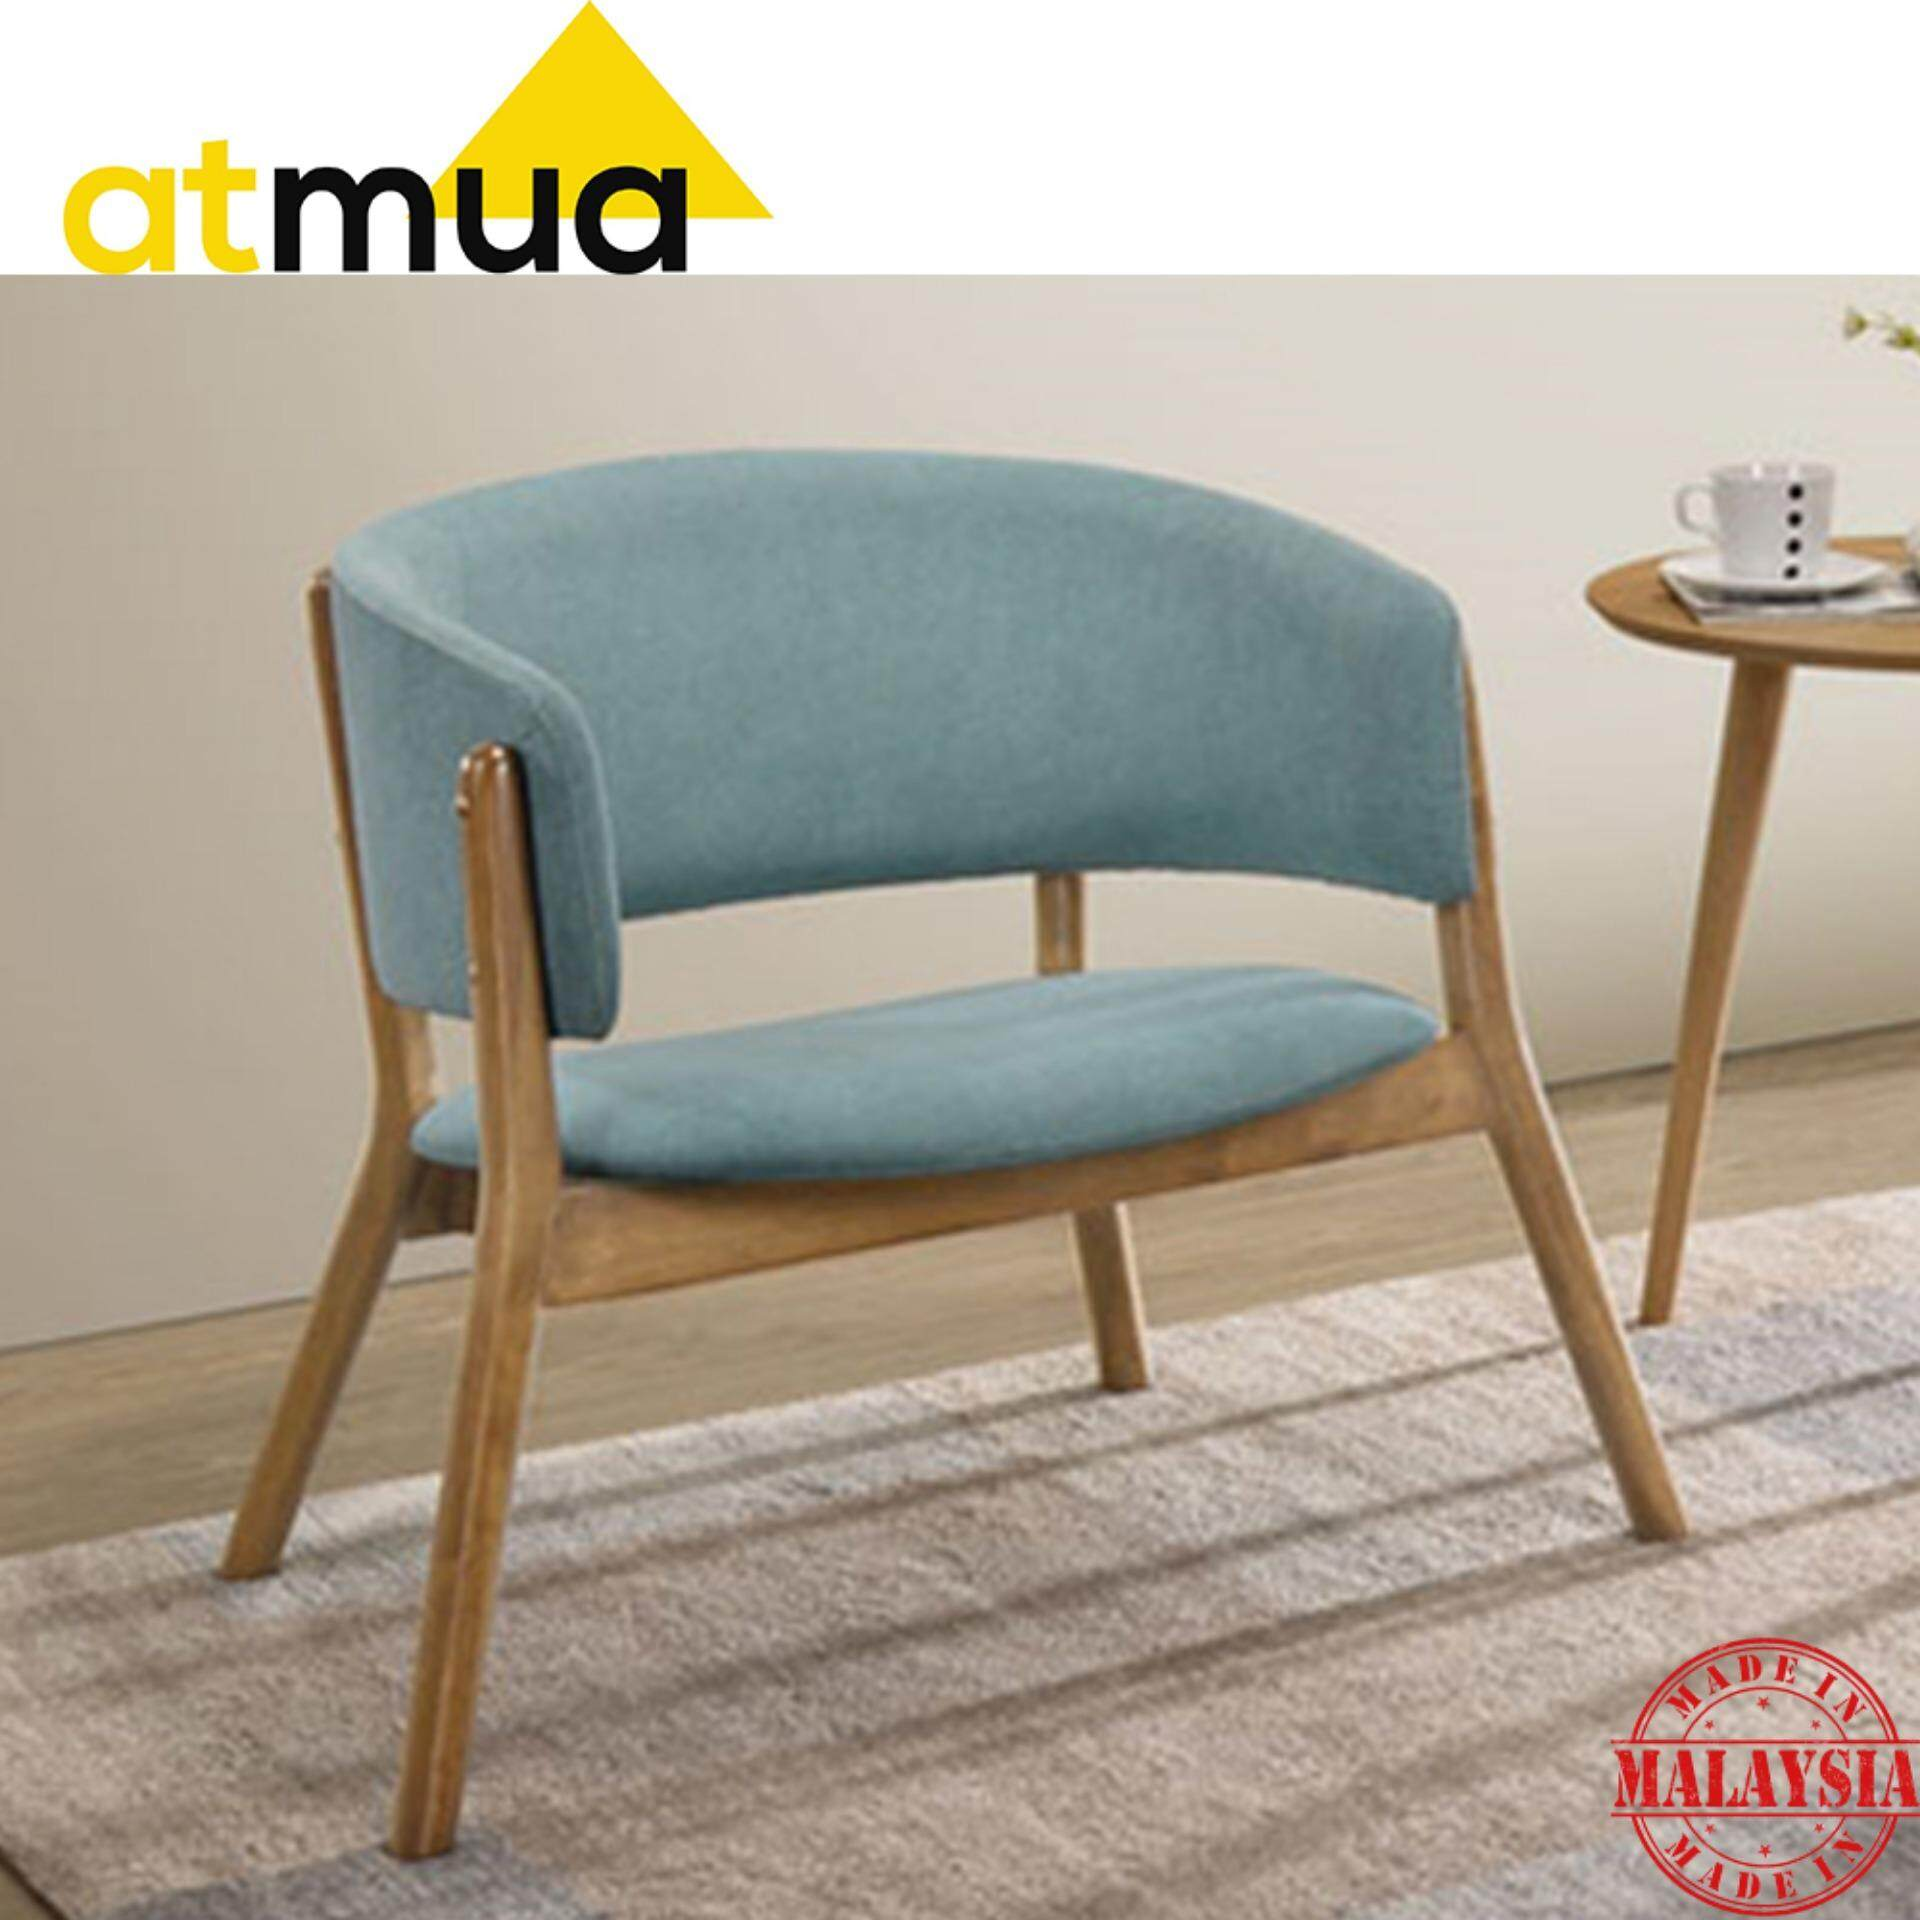 Atmua Milan Lounge Chair Set - [Full Solid Wood] (2 Unit Chair)